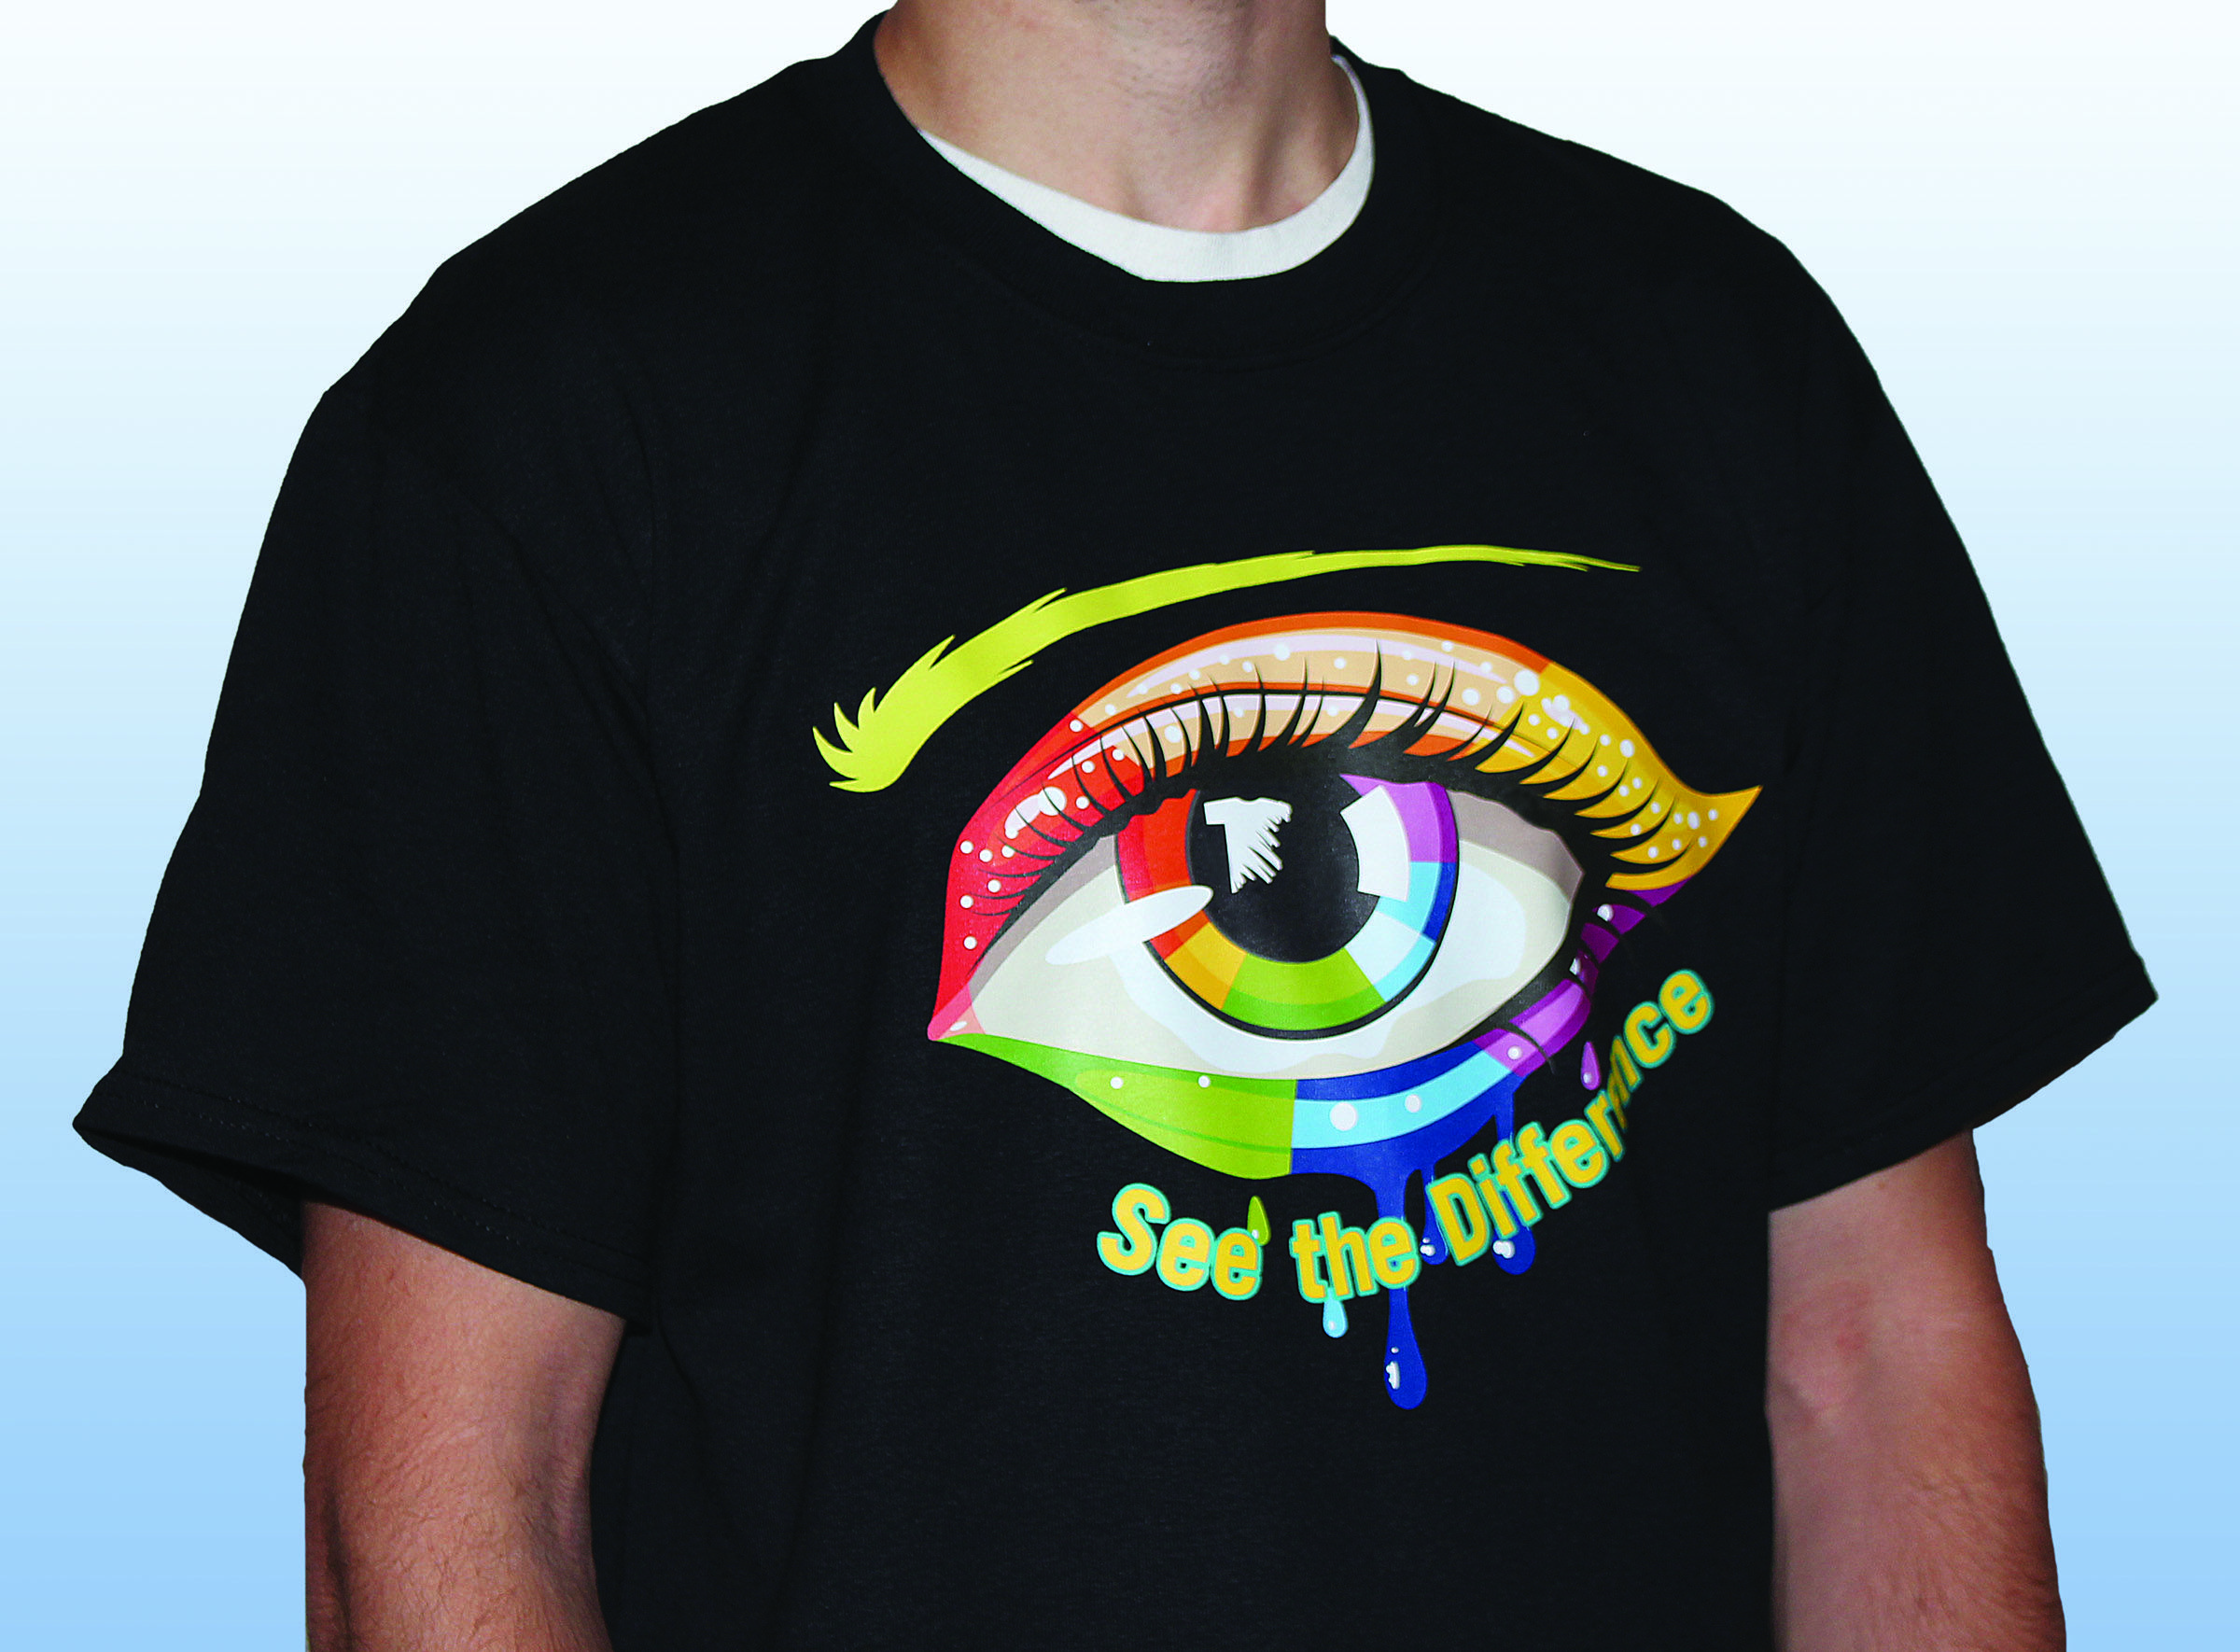 Shirt design transfer - Decorate Your Apparel With Stretch Litho Heat Transfers Full Color Digital And Screen Printed